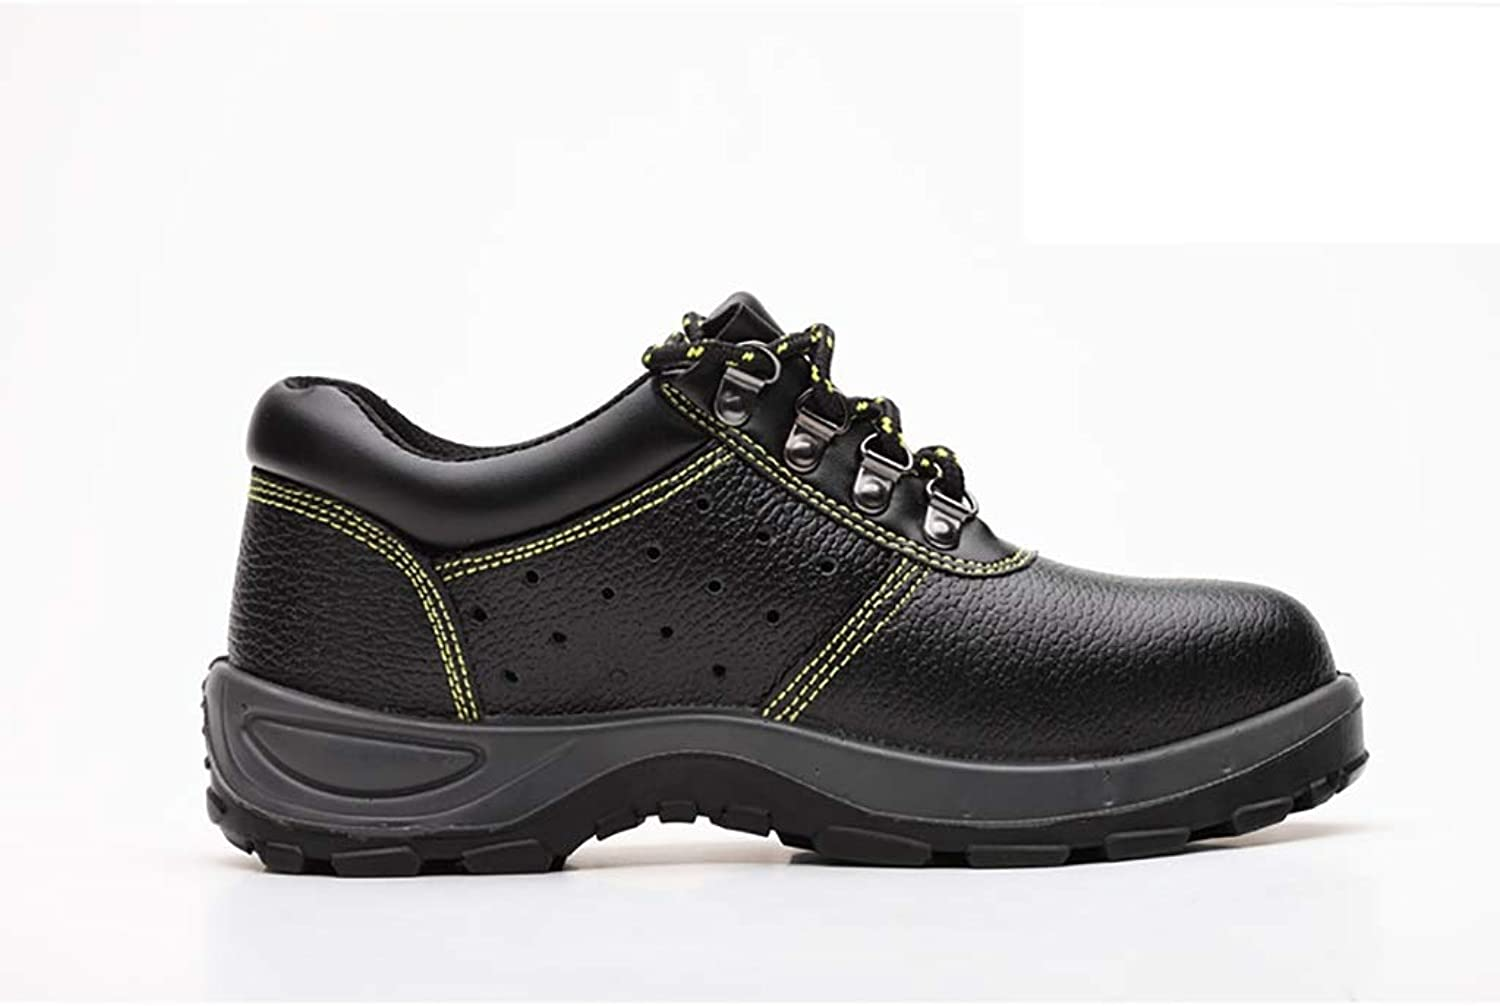 ZYFXZ Work shoes Anti-smashing and anti-piercing old predective shoes, waterproof non-slip solid sole shoes, summer breathable deodorant shoes safety shoes (color   A, Size   45)